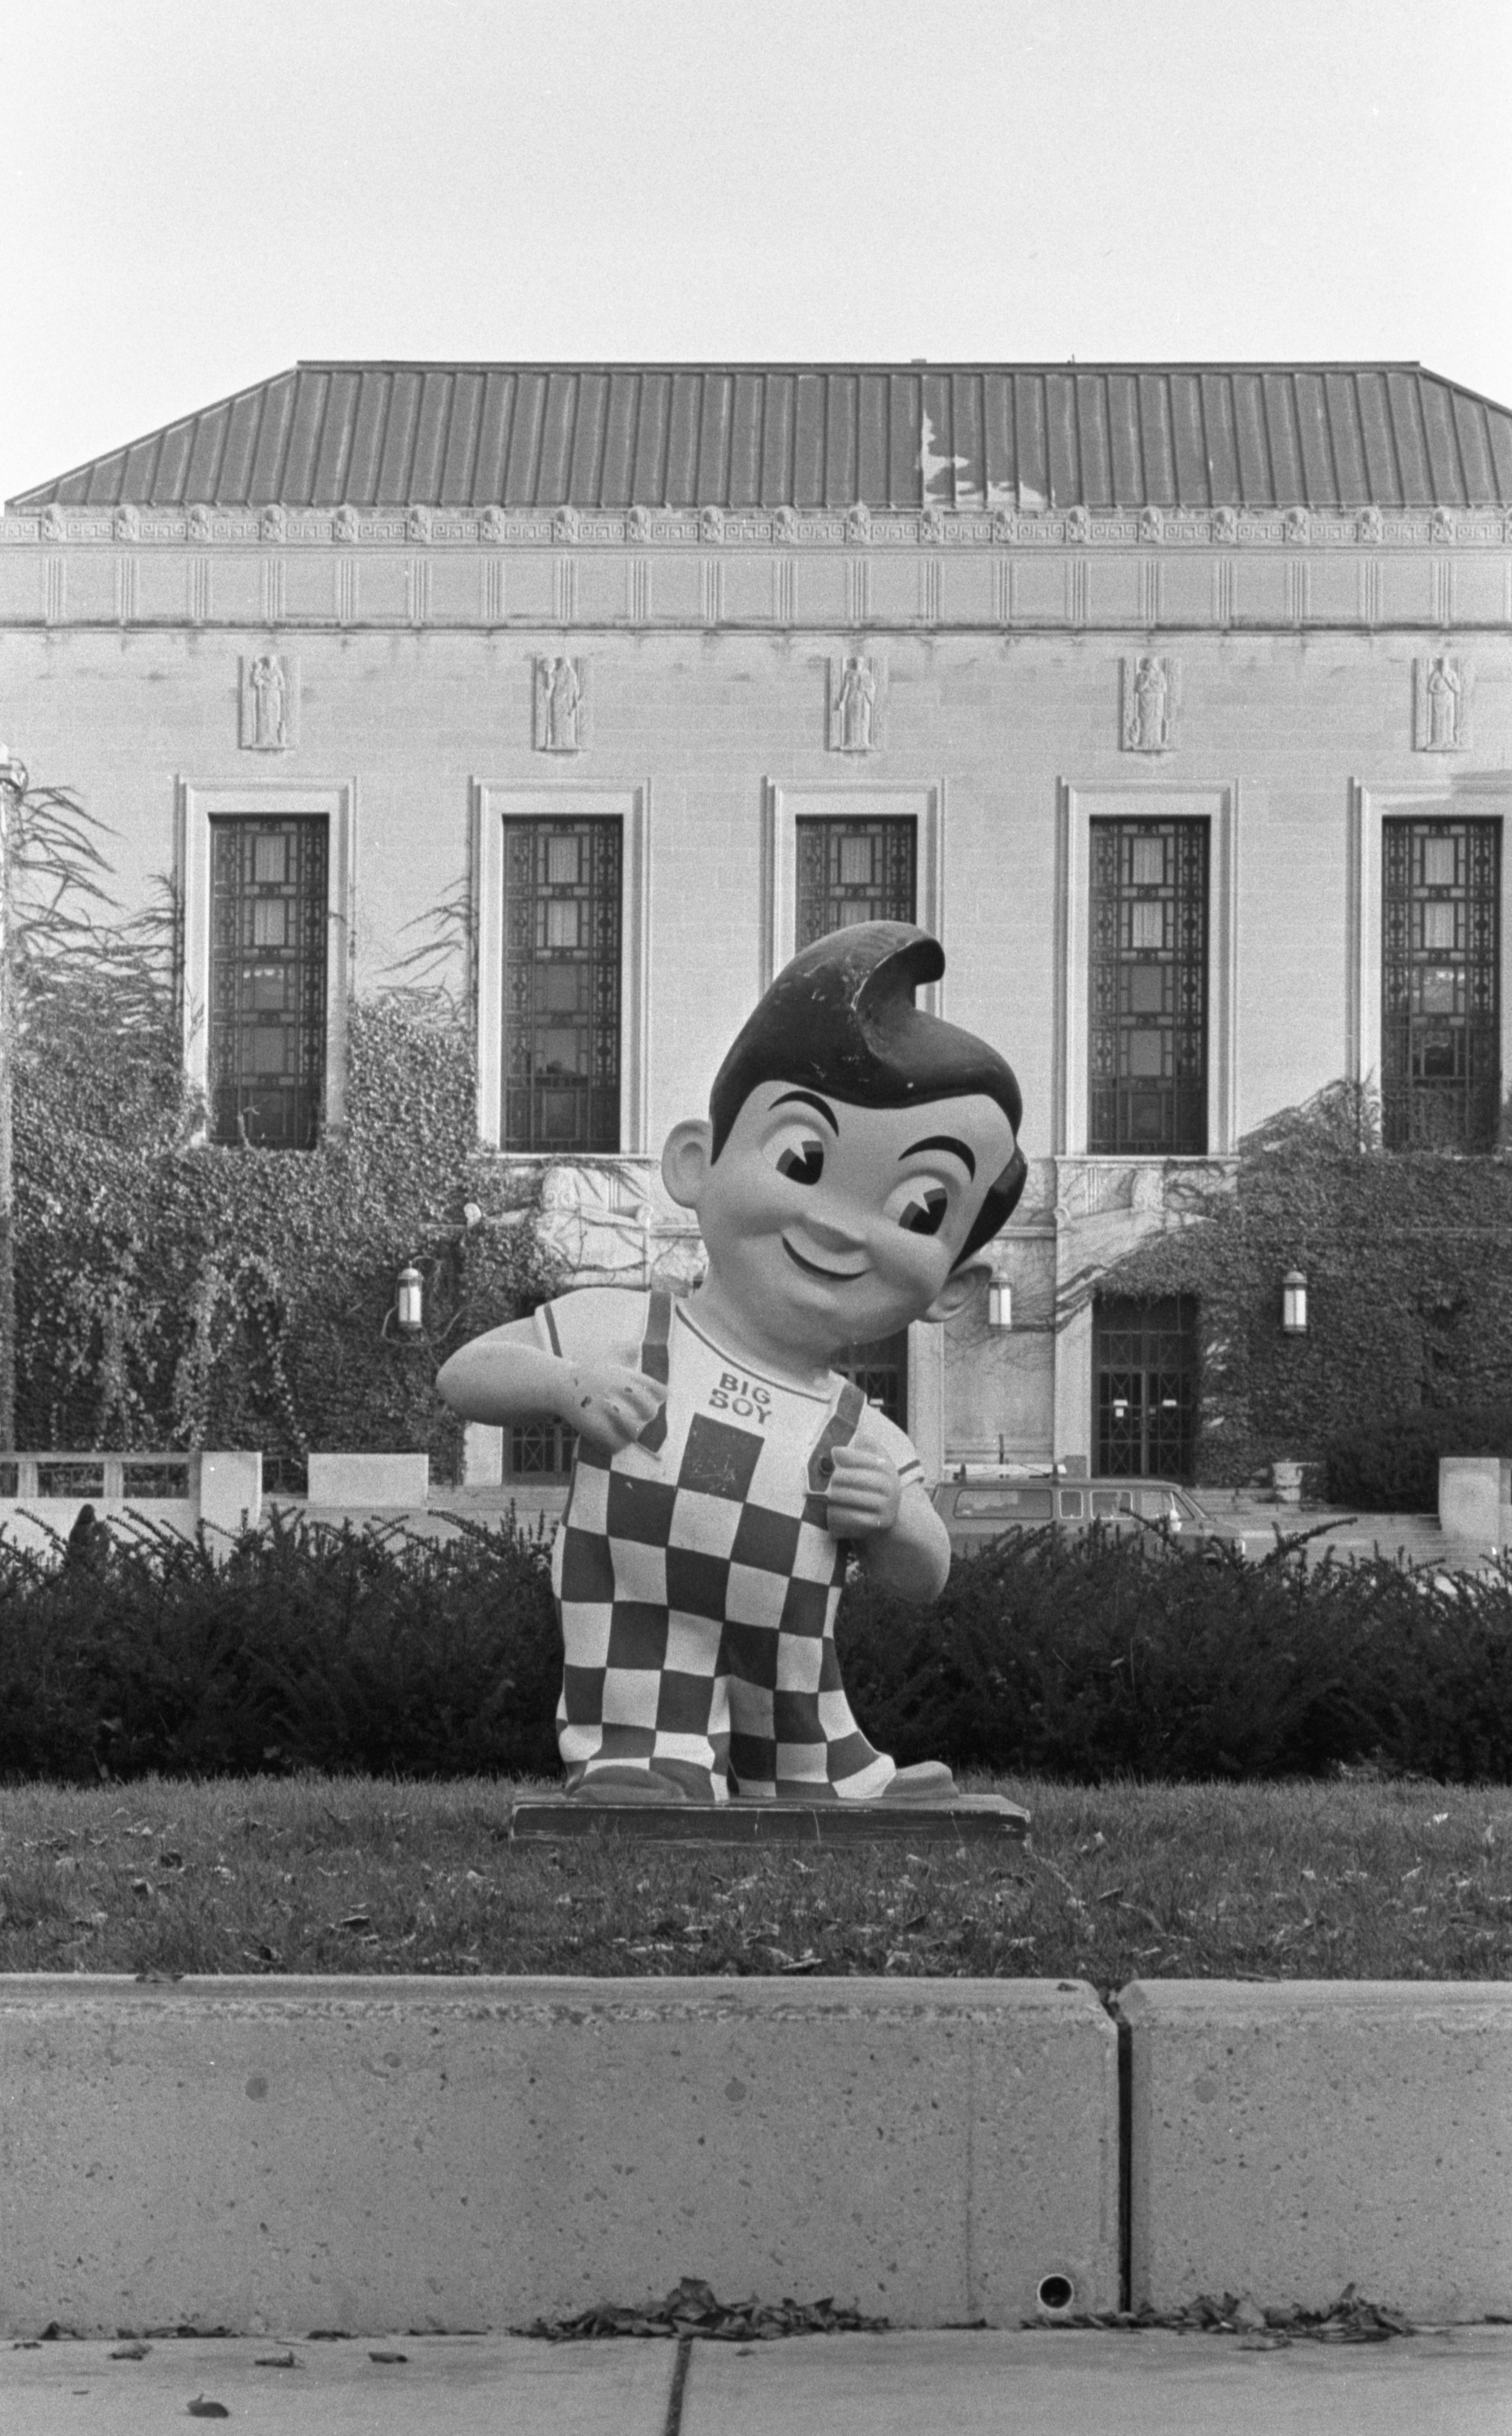 Stolen Big Boy Statue On Campus Between Burton Tower & The Michigan League, October 1991 image